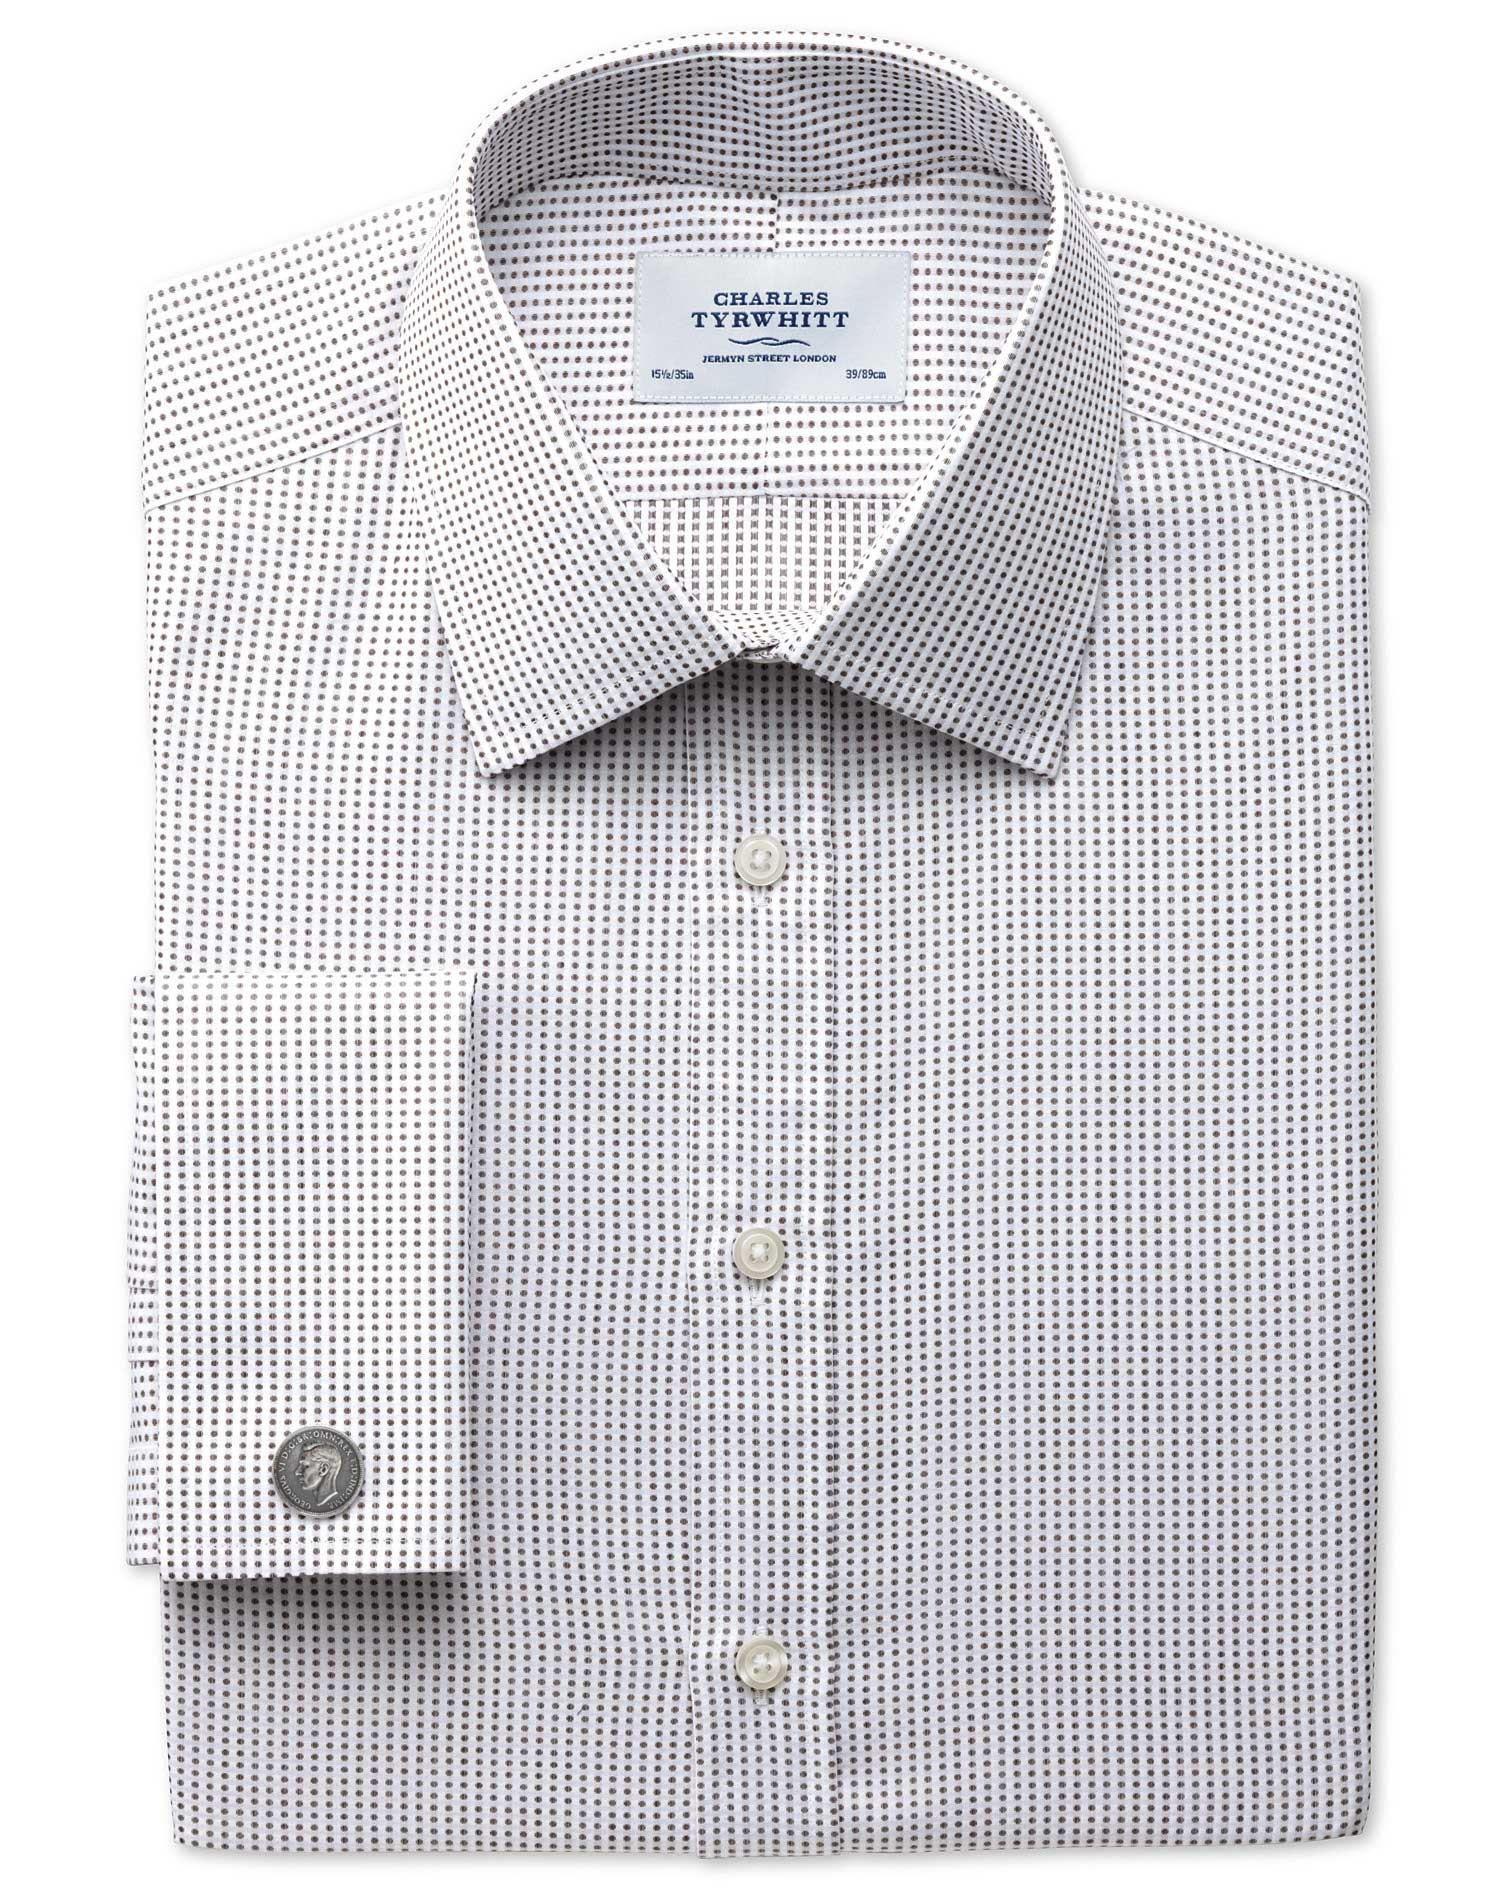 Classic Fit Pima Cotton Double-Faced Brown Formal Shirt Double Cuff Size 16/38 by Charles Tyrwhitt